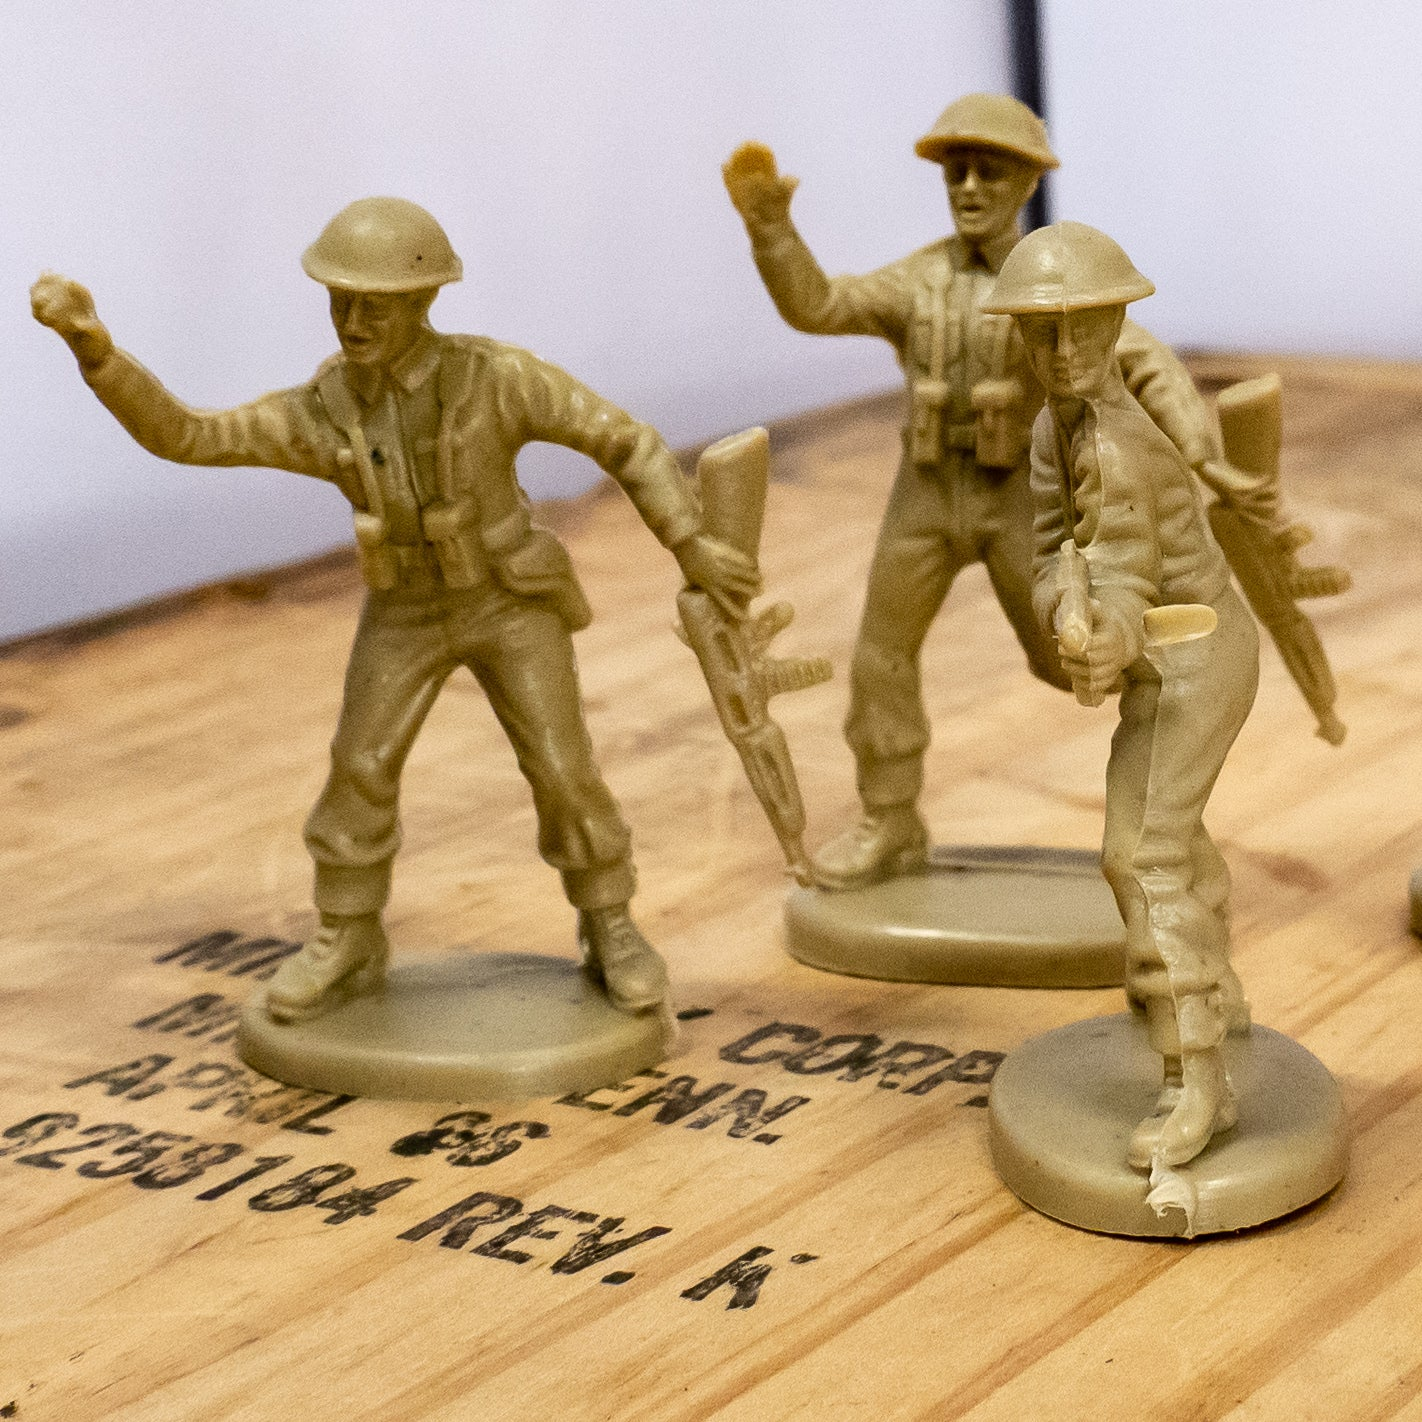 Atlantic British Infantry Toy Soldiers – The History Company